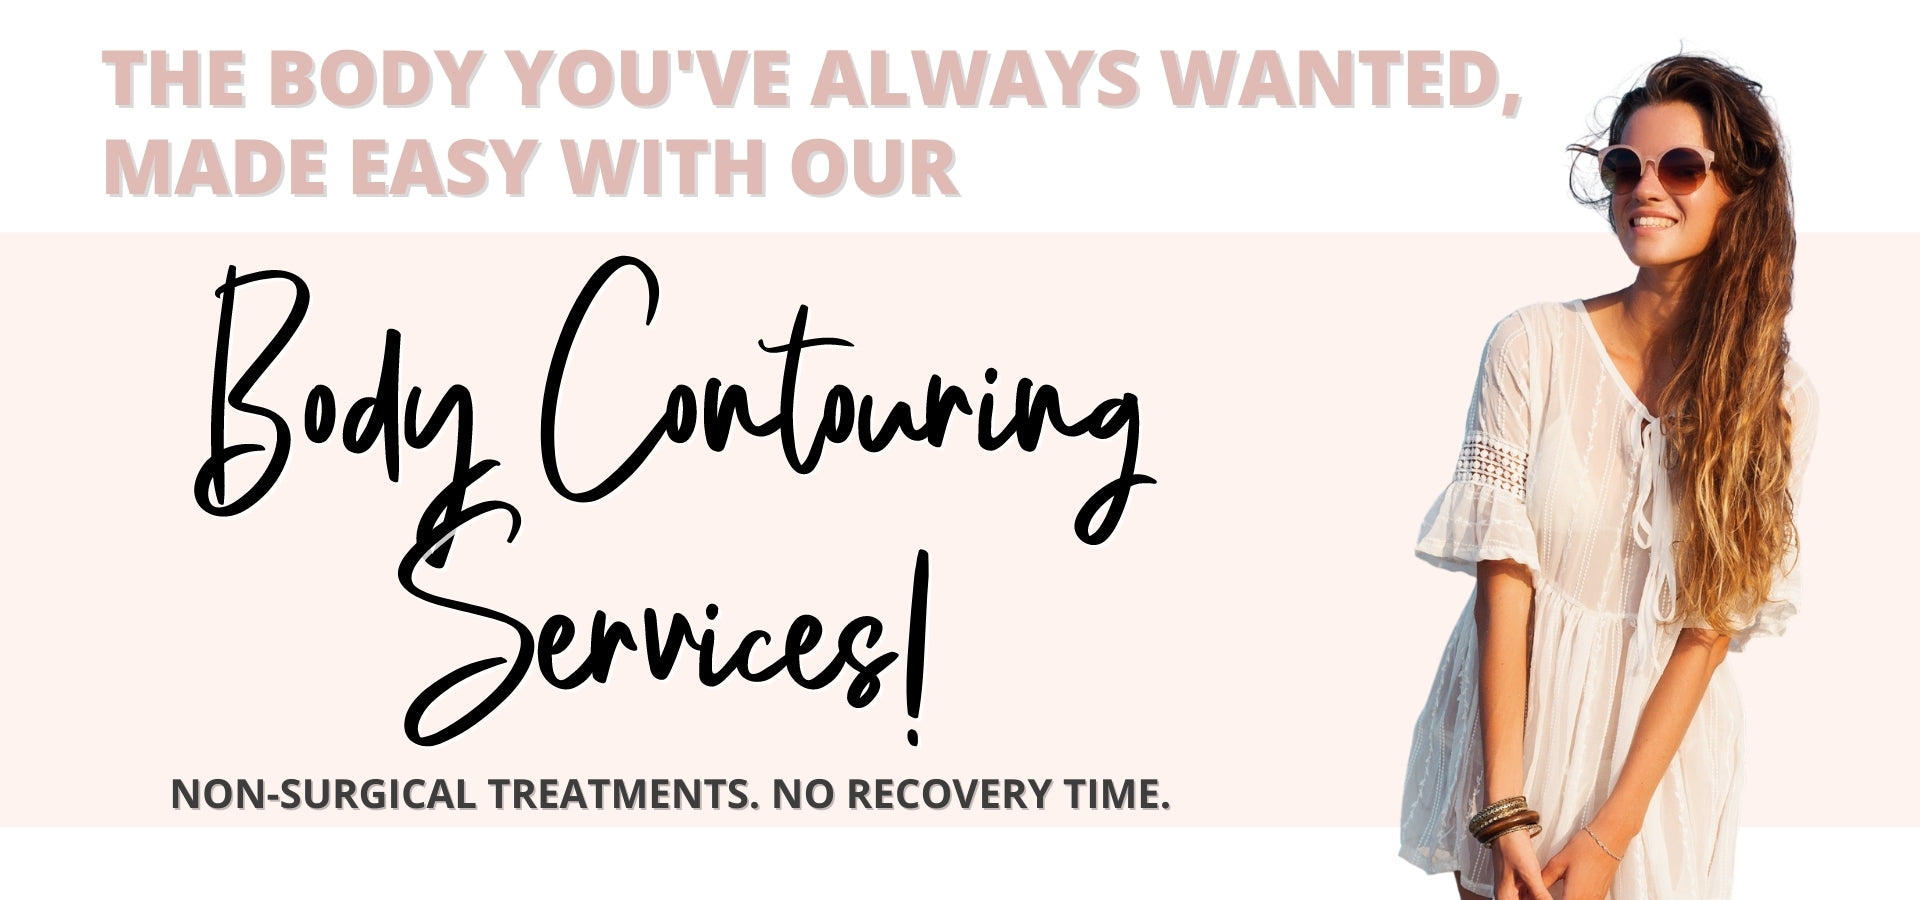 Body Contouring Services Header Image with a Lovely Woman